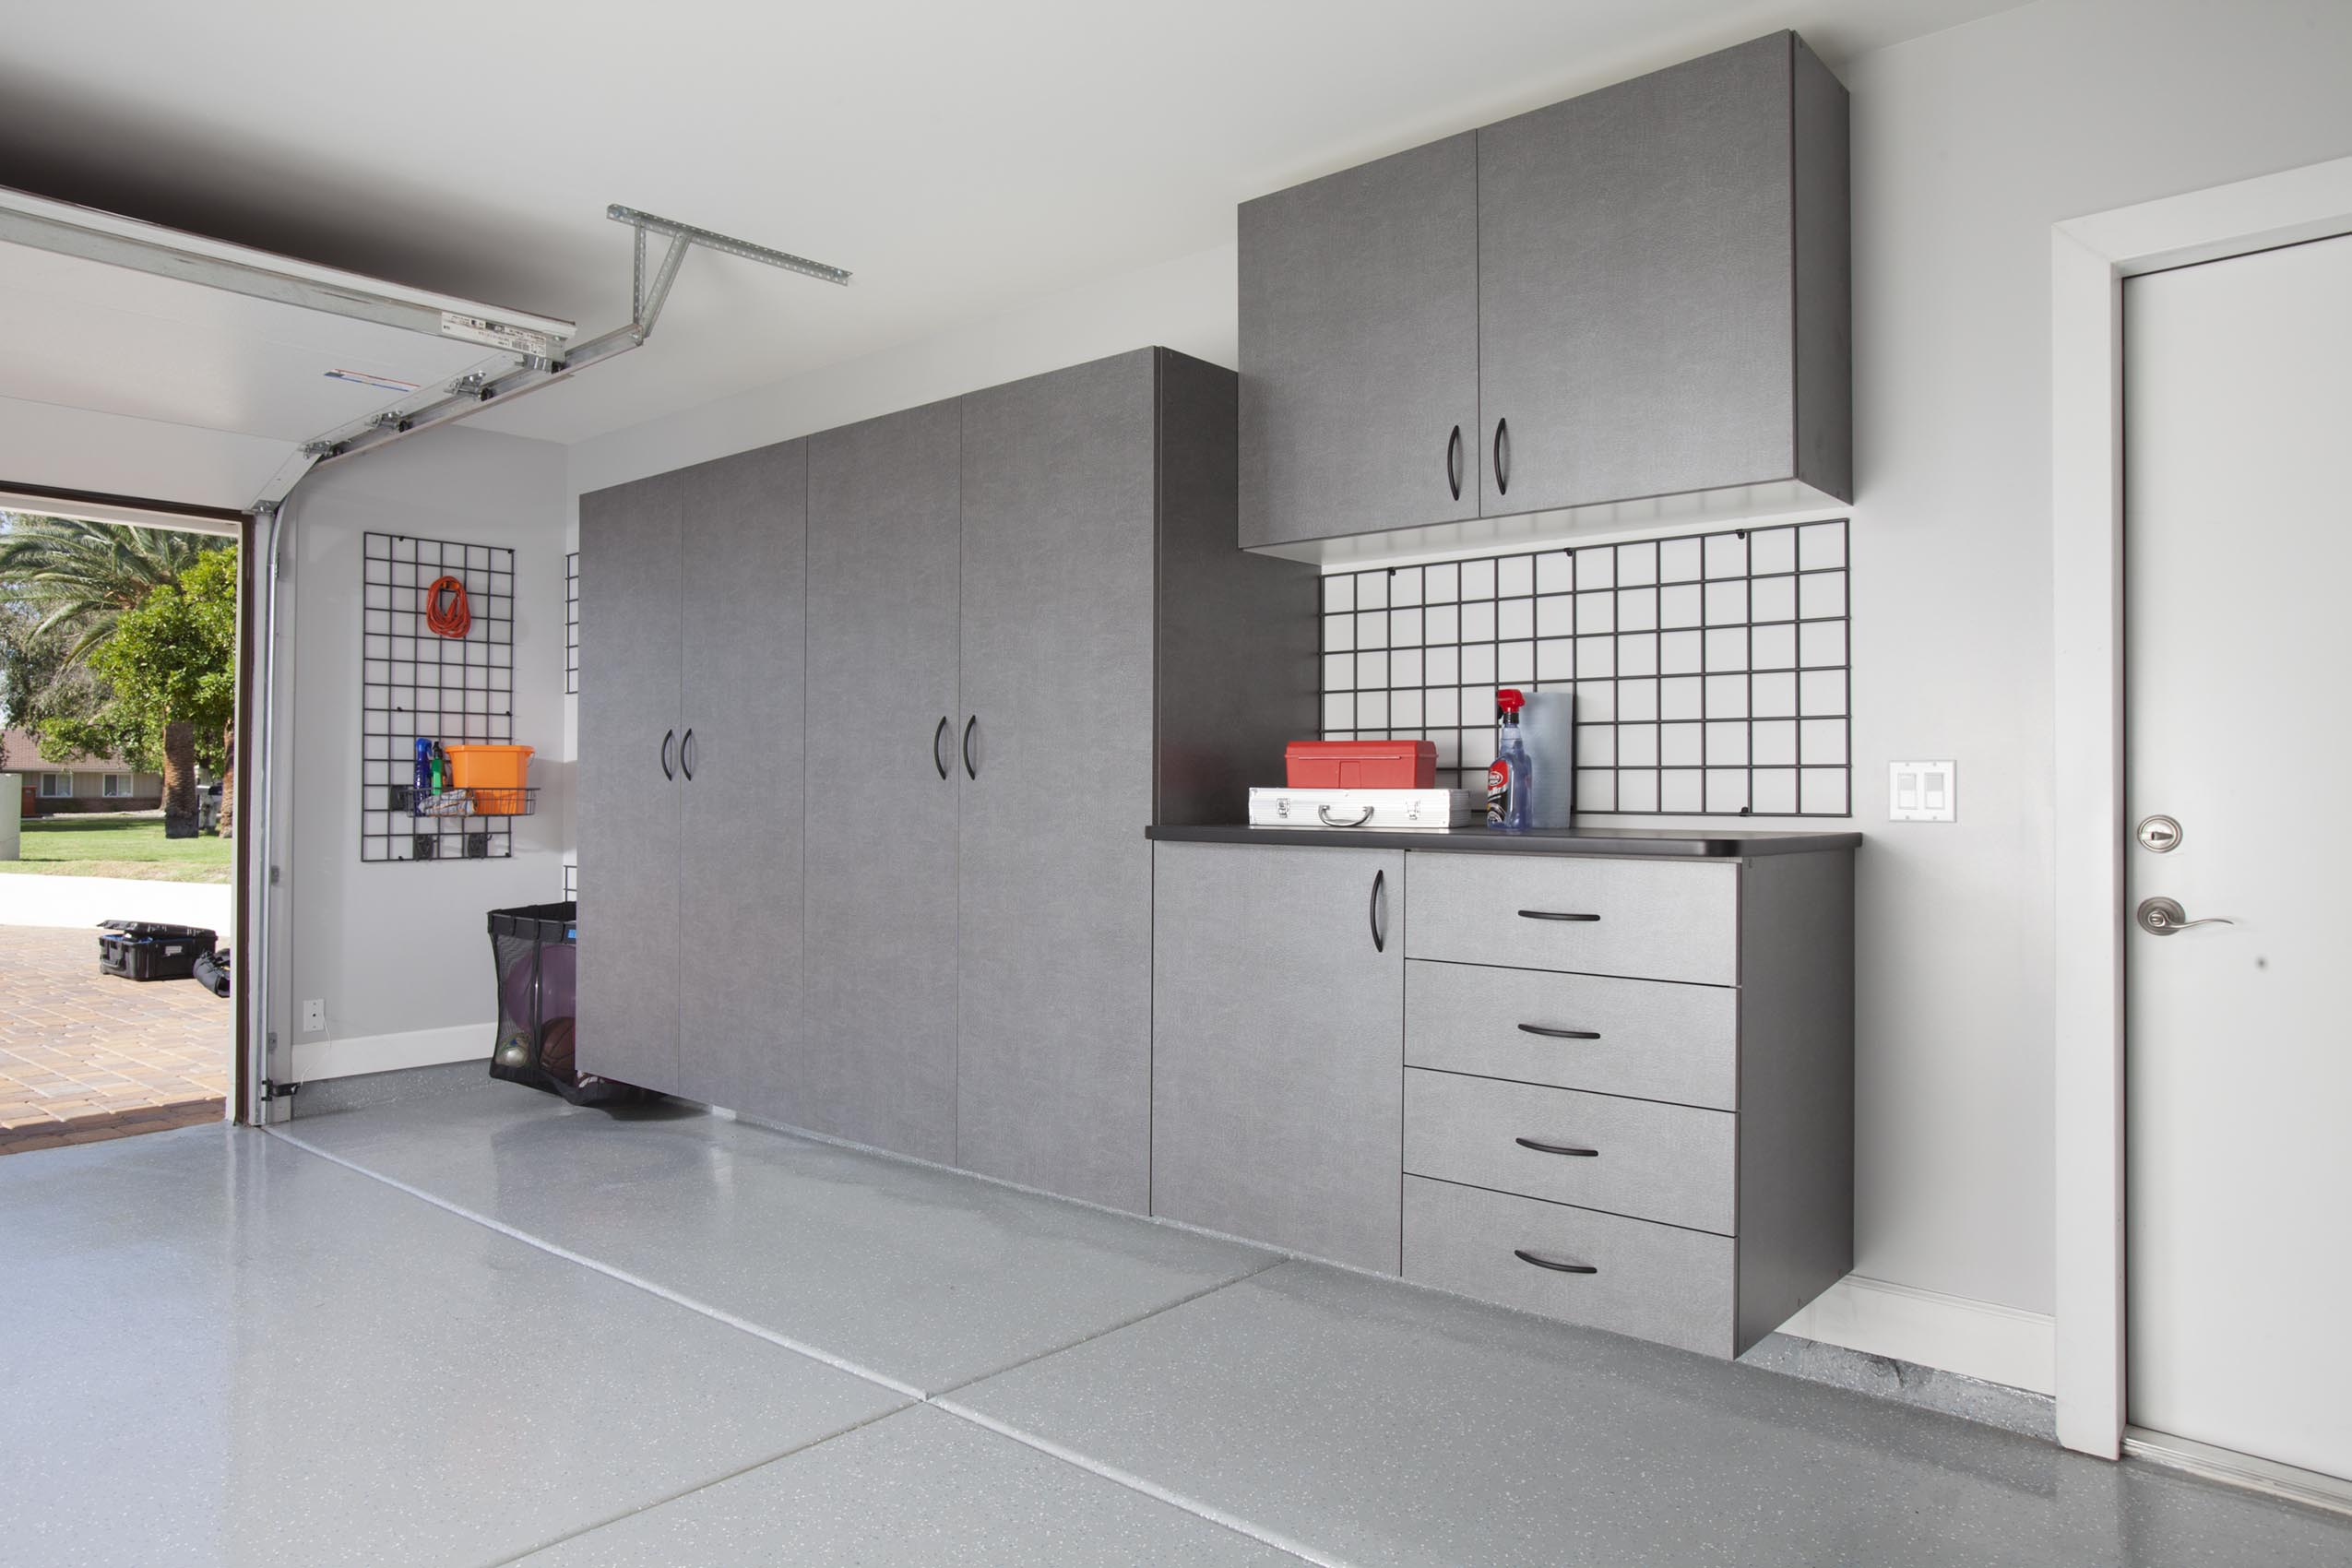 Pewter Cabinets with Ebony Workbench w Grid Wall